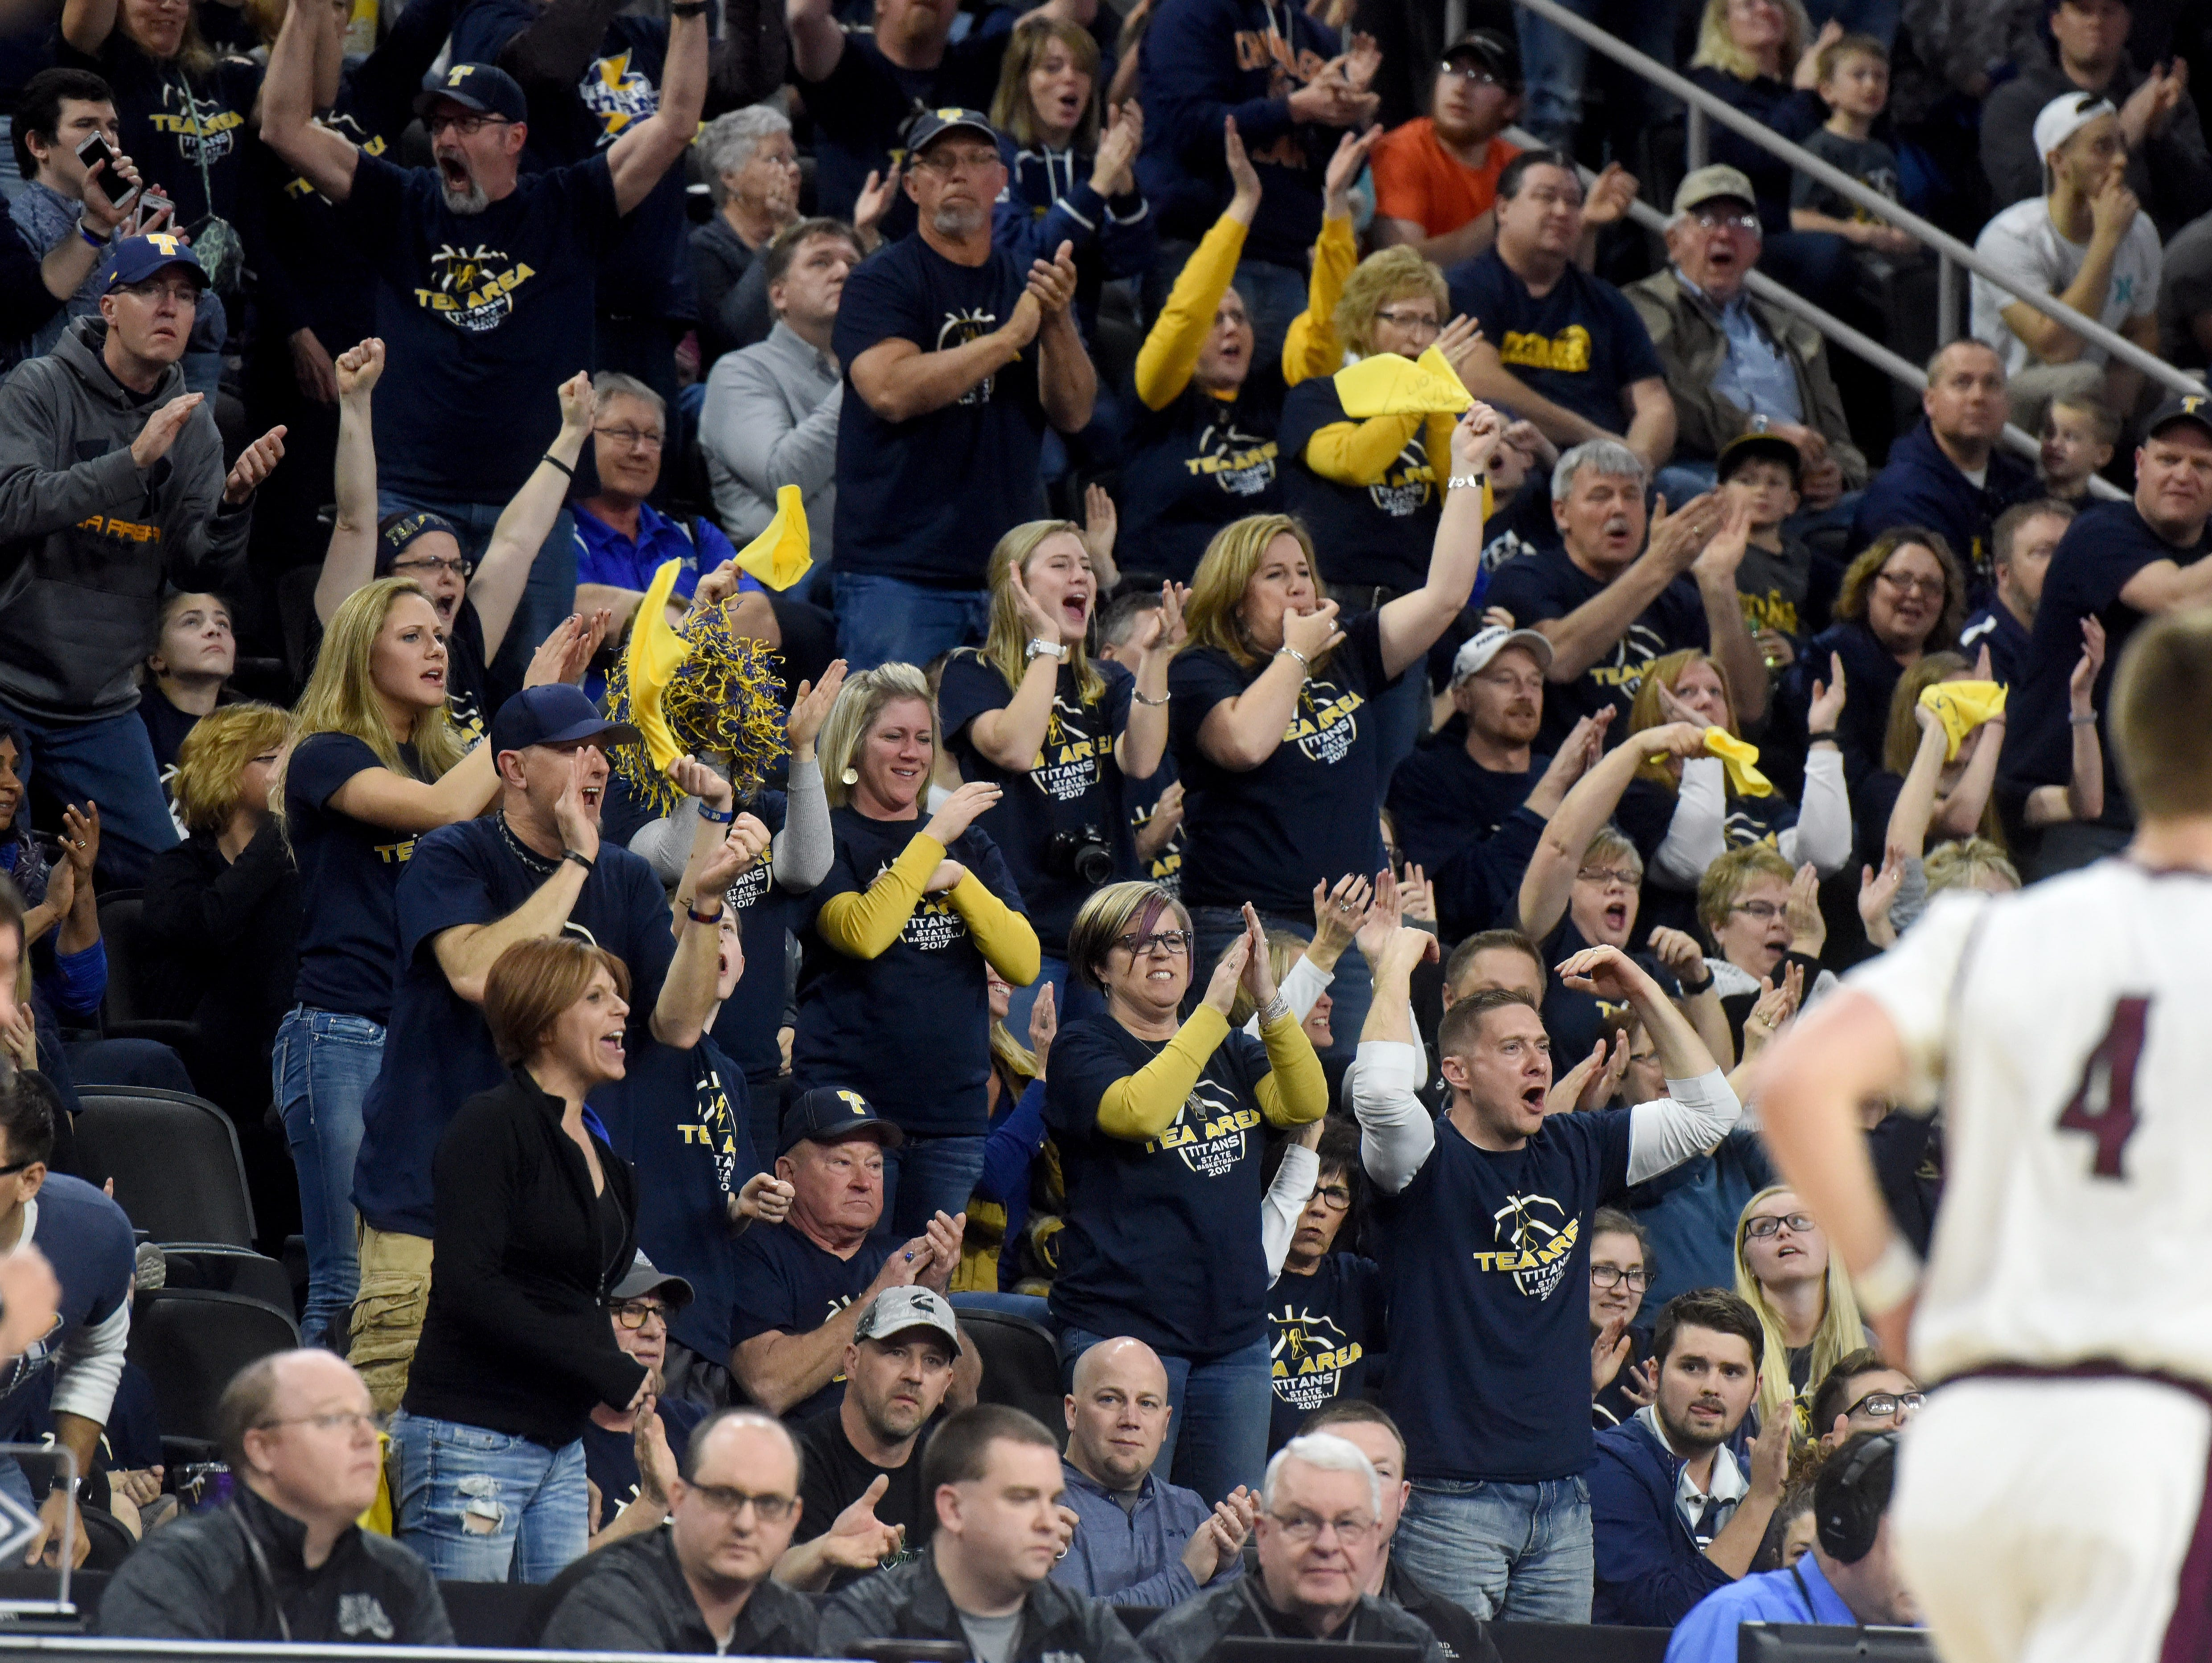 Tea Area fans go wild after scoring against Madison during the 2017 SDHSAA Class A boy's basketball championship at the Denny Sanford Premier Center on Saturday, March 18, 2017.